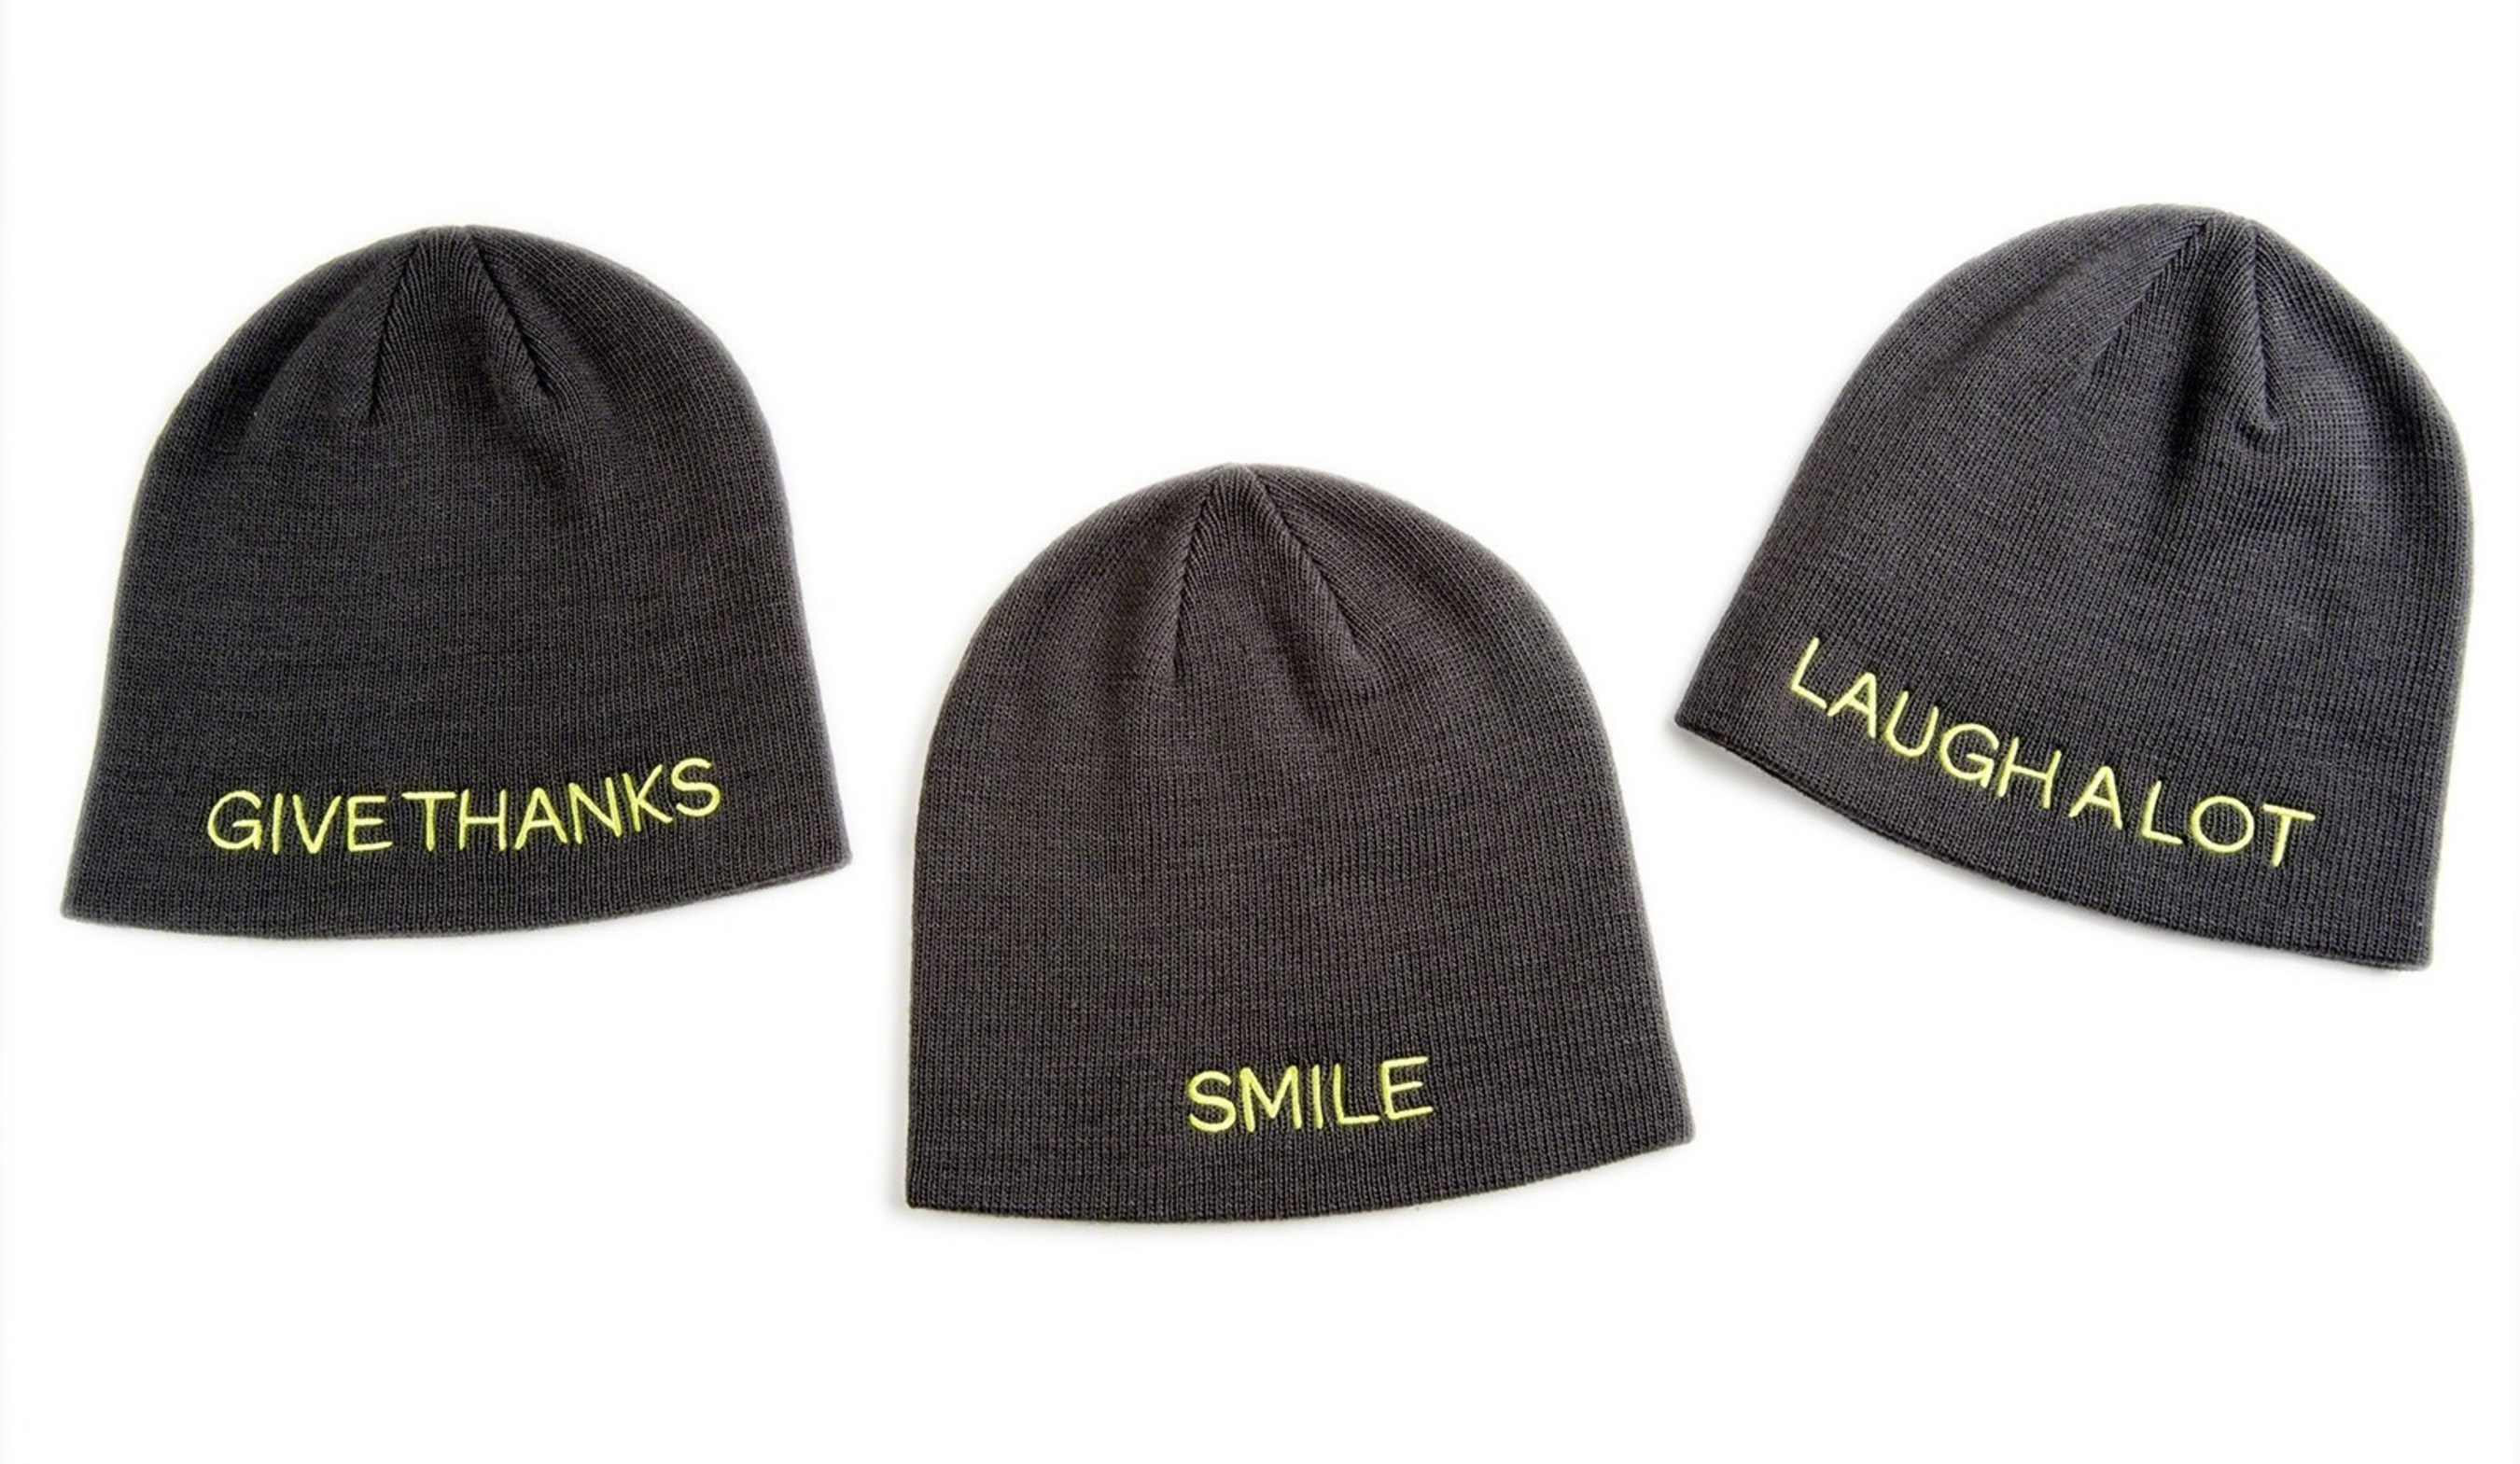 """The Giving Hat(TM) is a stylish winter knit hat, one-size-fits-all and available in three versions embroidered with messages inspired by St. Jude patients and their families: """"Smile,"""" """"Laugh A Lot,"""" and """"Give Thanks."""" The Giving Hat(TM) is available exclusively this holiday season at all Kmart stores or online at kmart.com/stjude"""